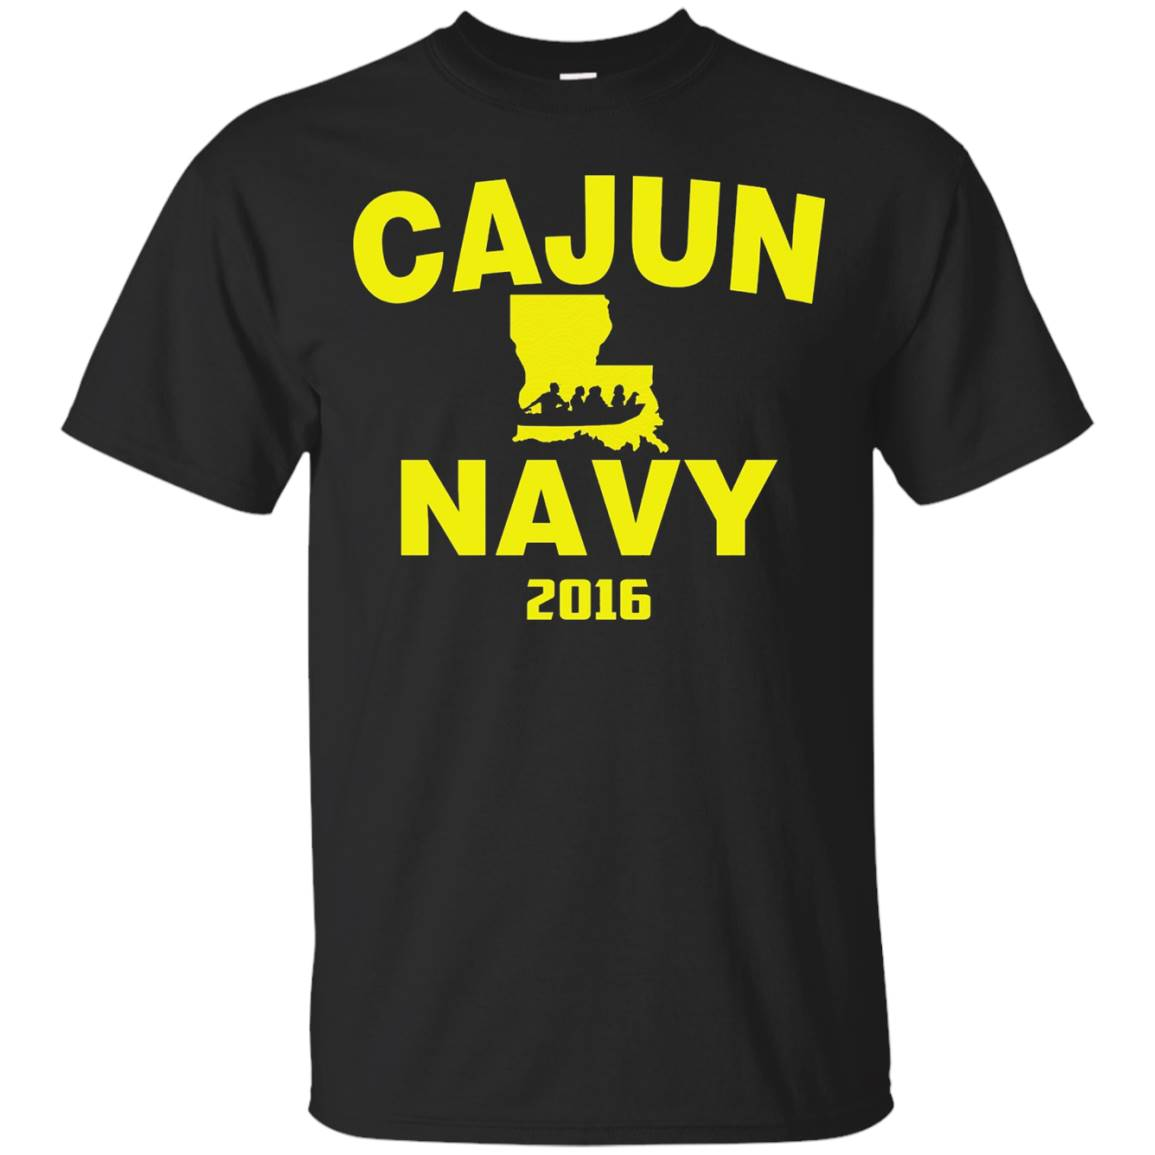 Cajun Navy 2016 T-shirt, Louisiana Strong T-Shirt